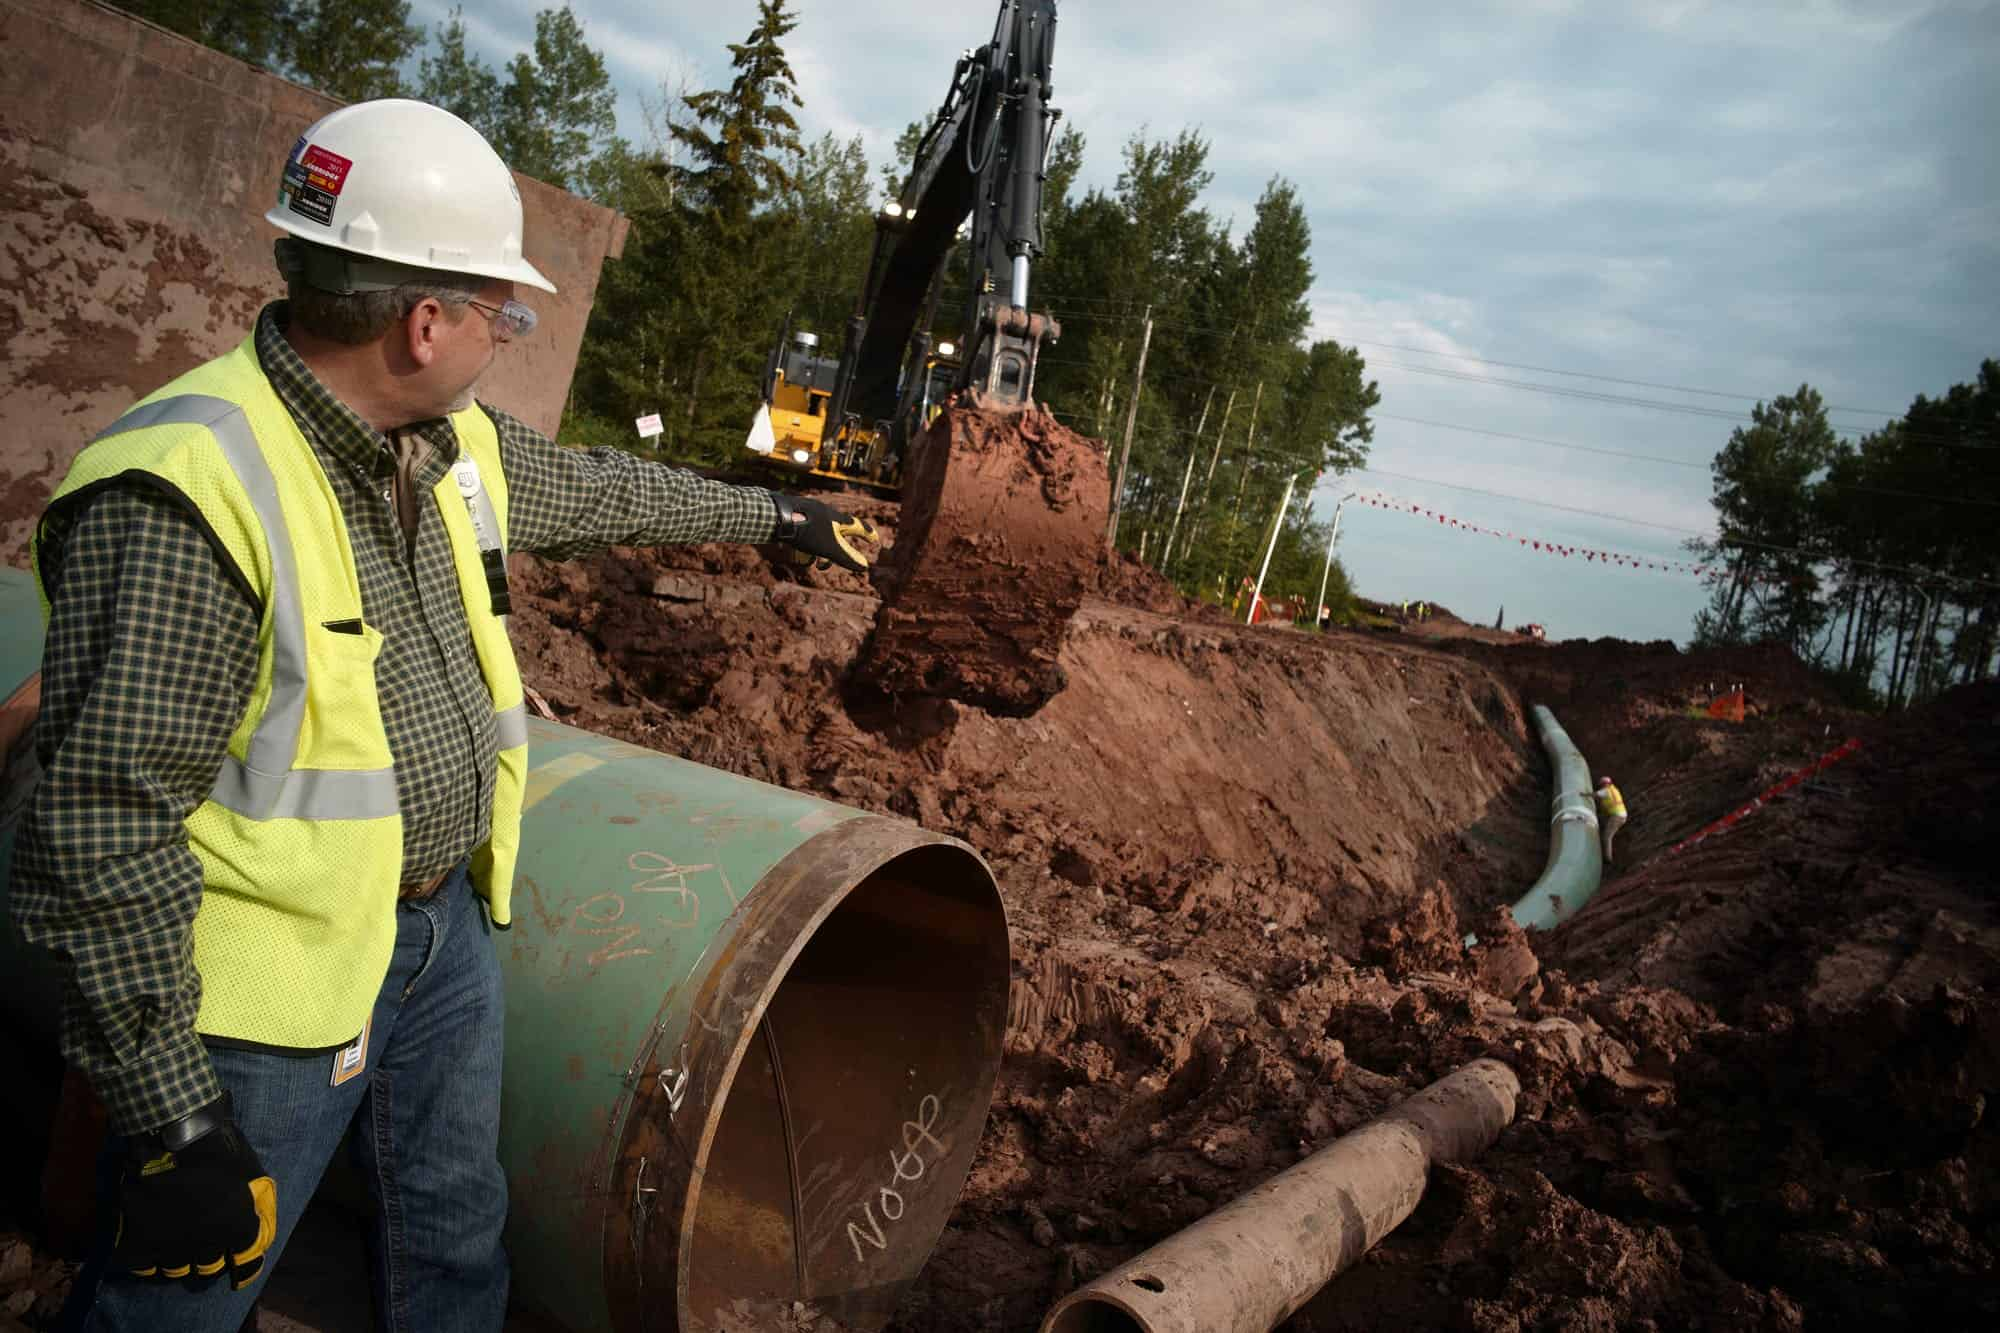 Enbridge Want to Hire Laborers, Operators, Welders & More in AB & ON – Apply Today & Get Hired!